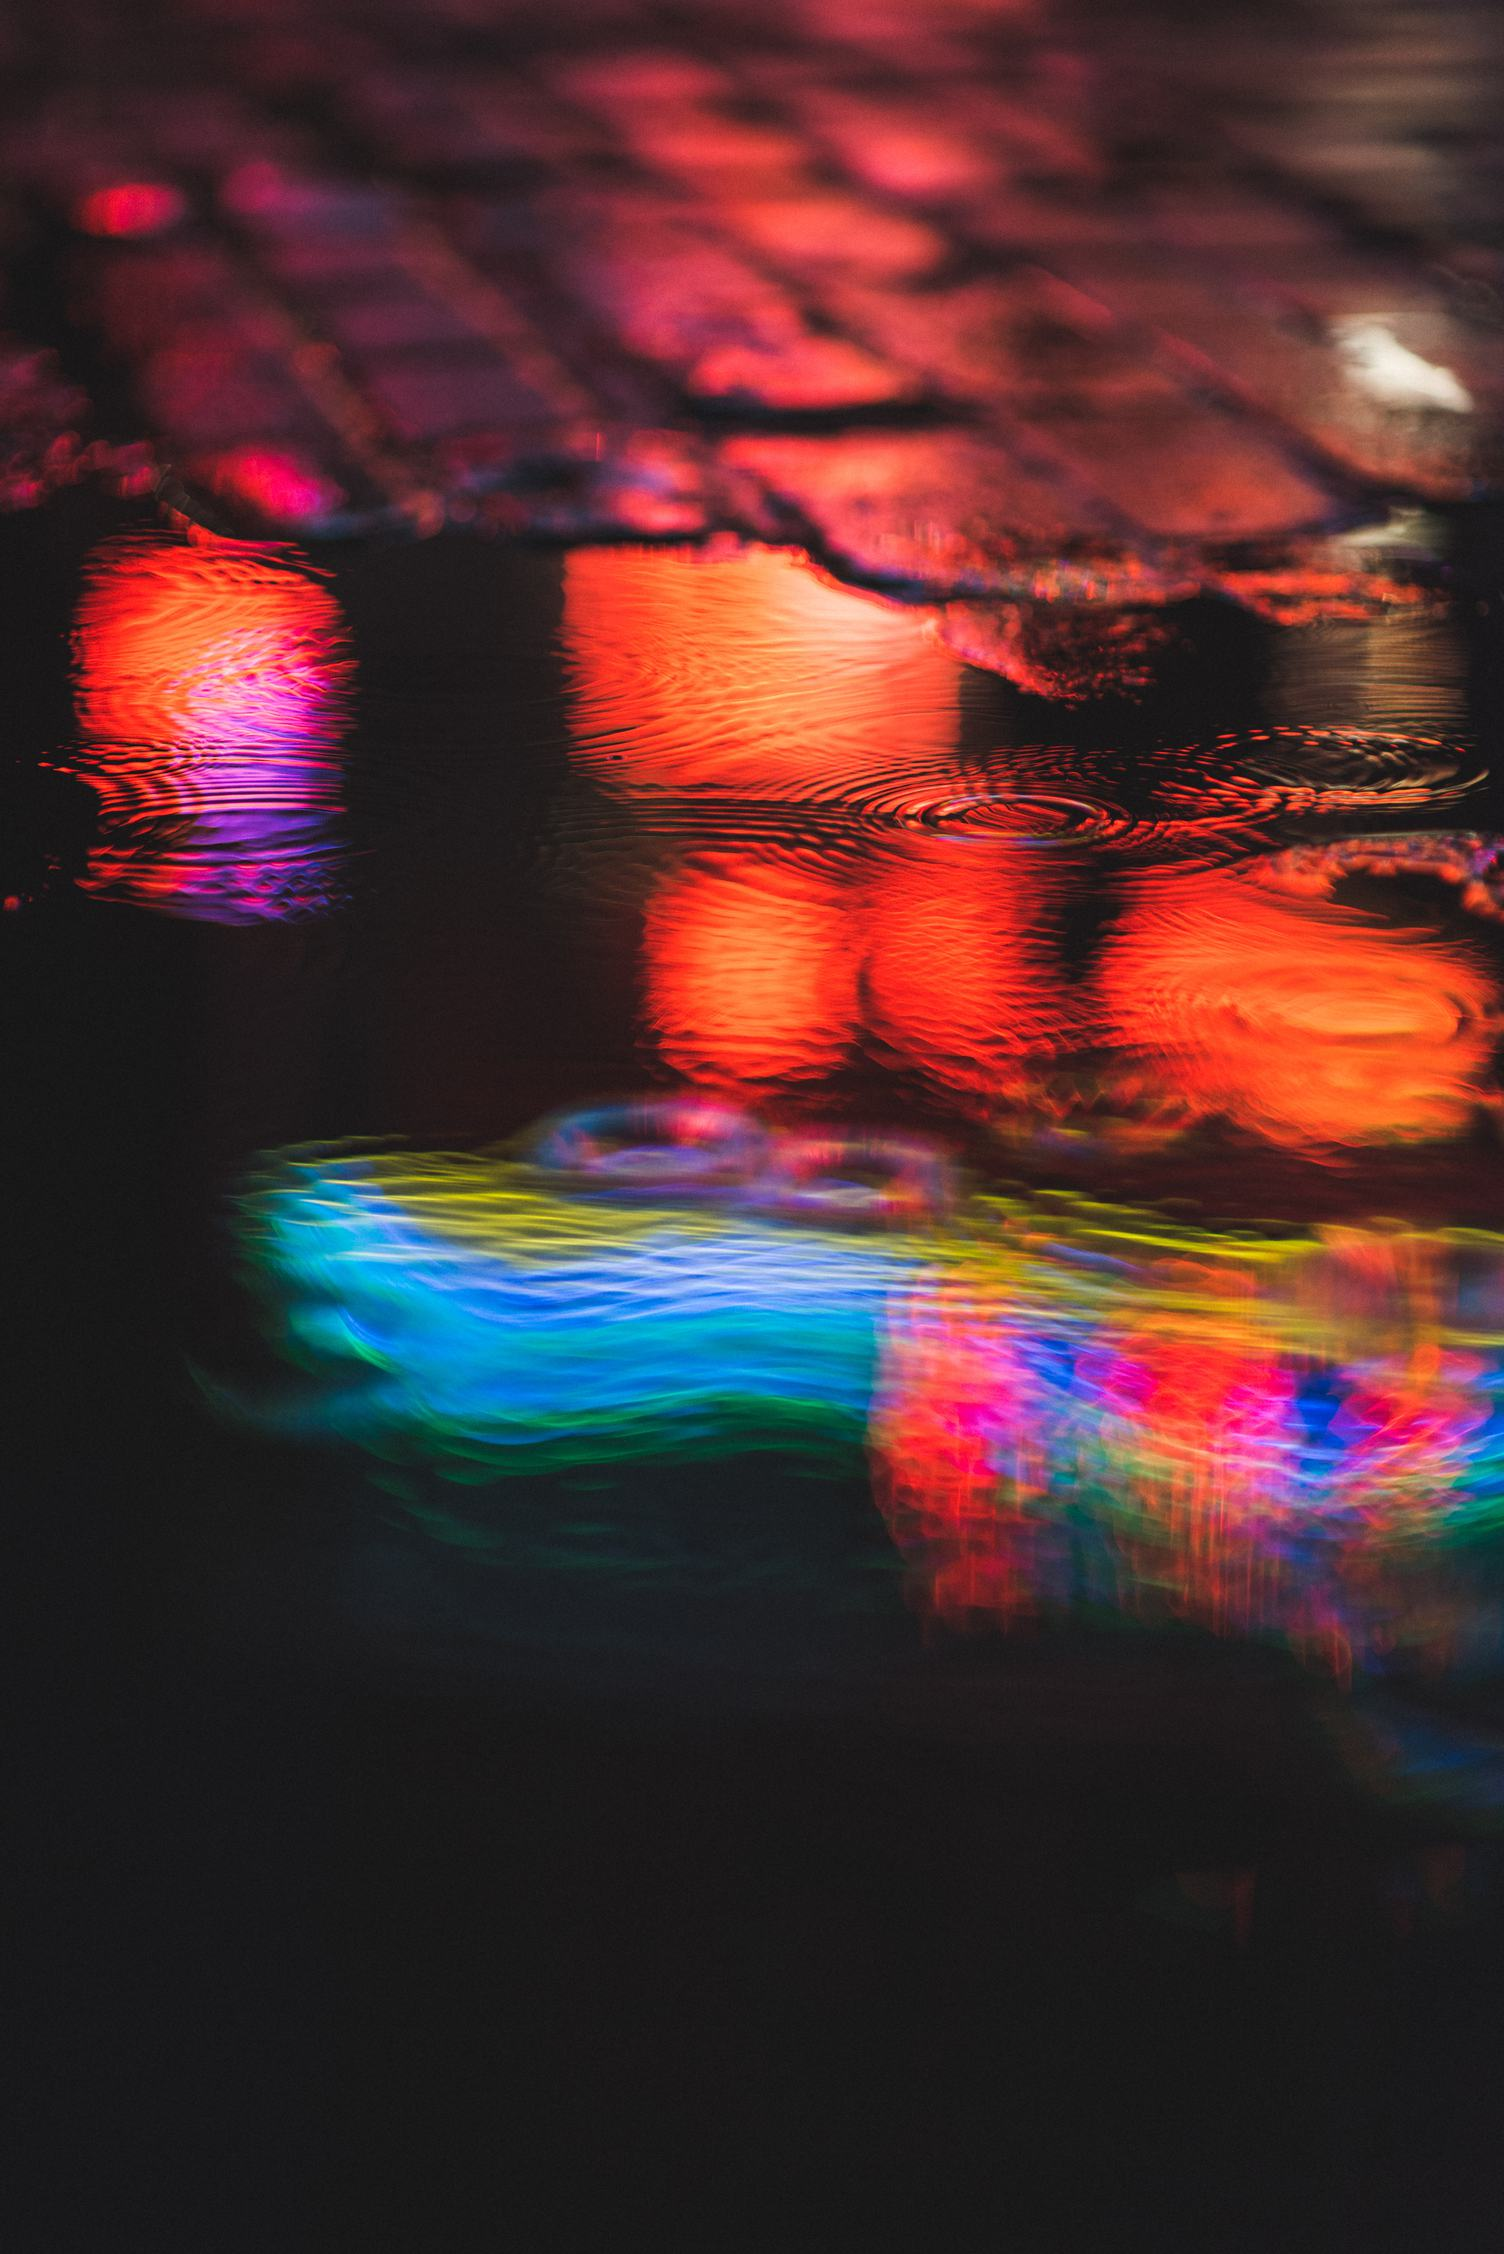 Colorful Lights Bouncing in the Puddle at Night